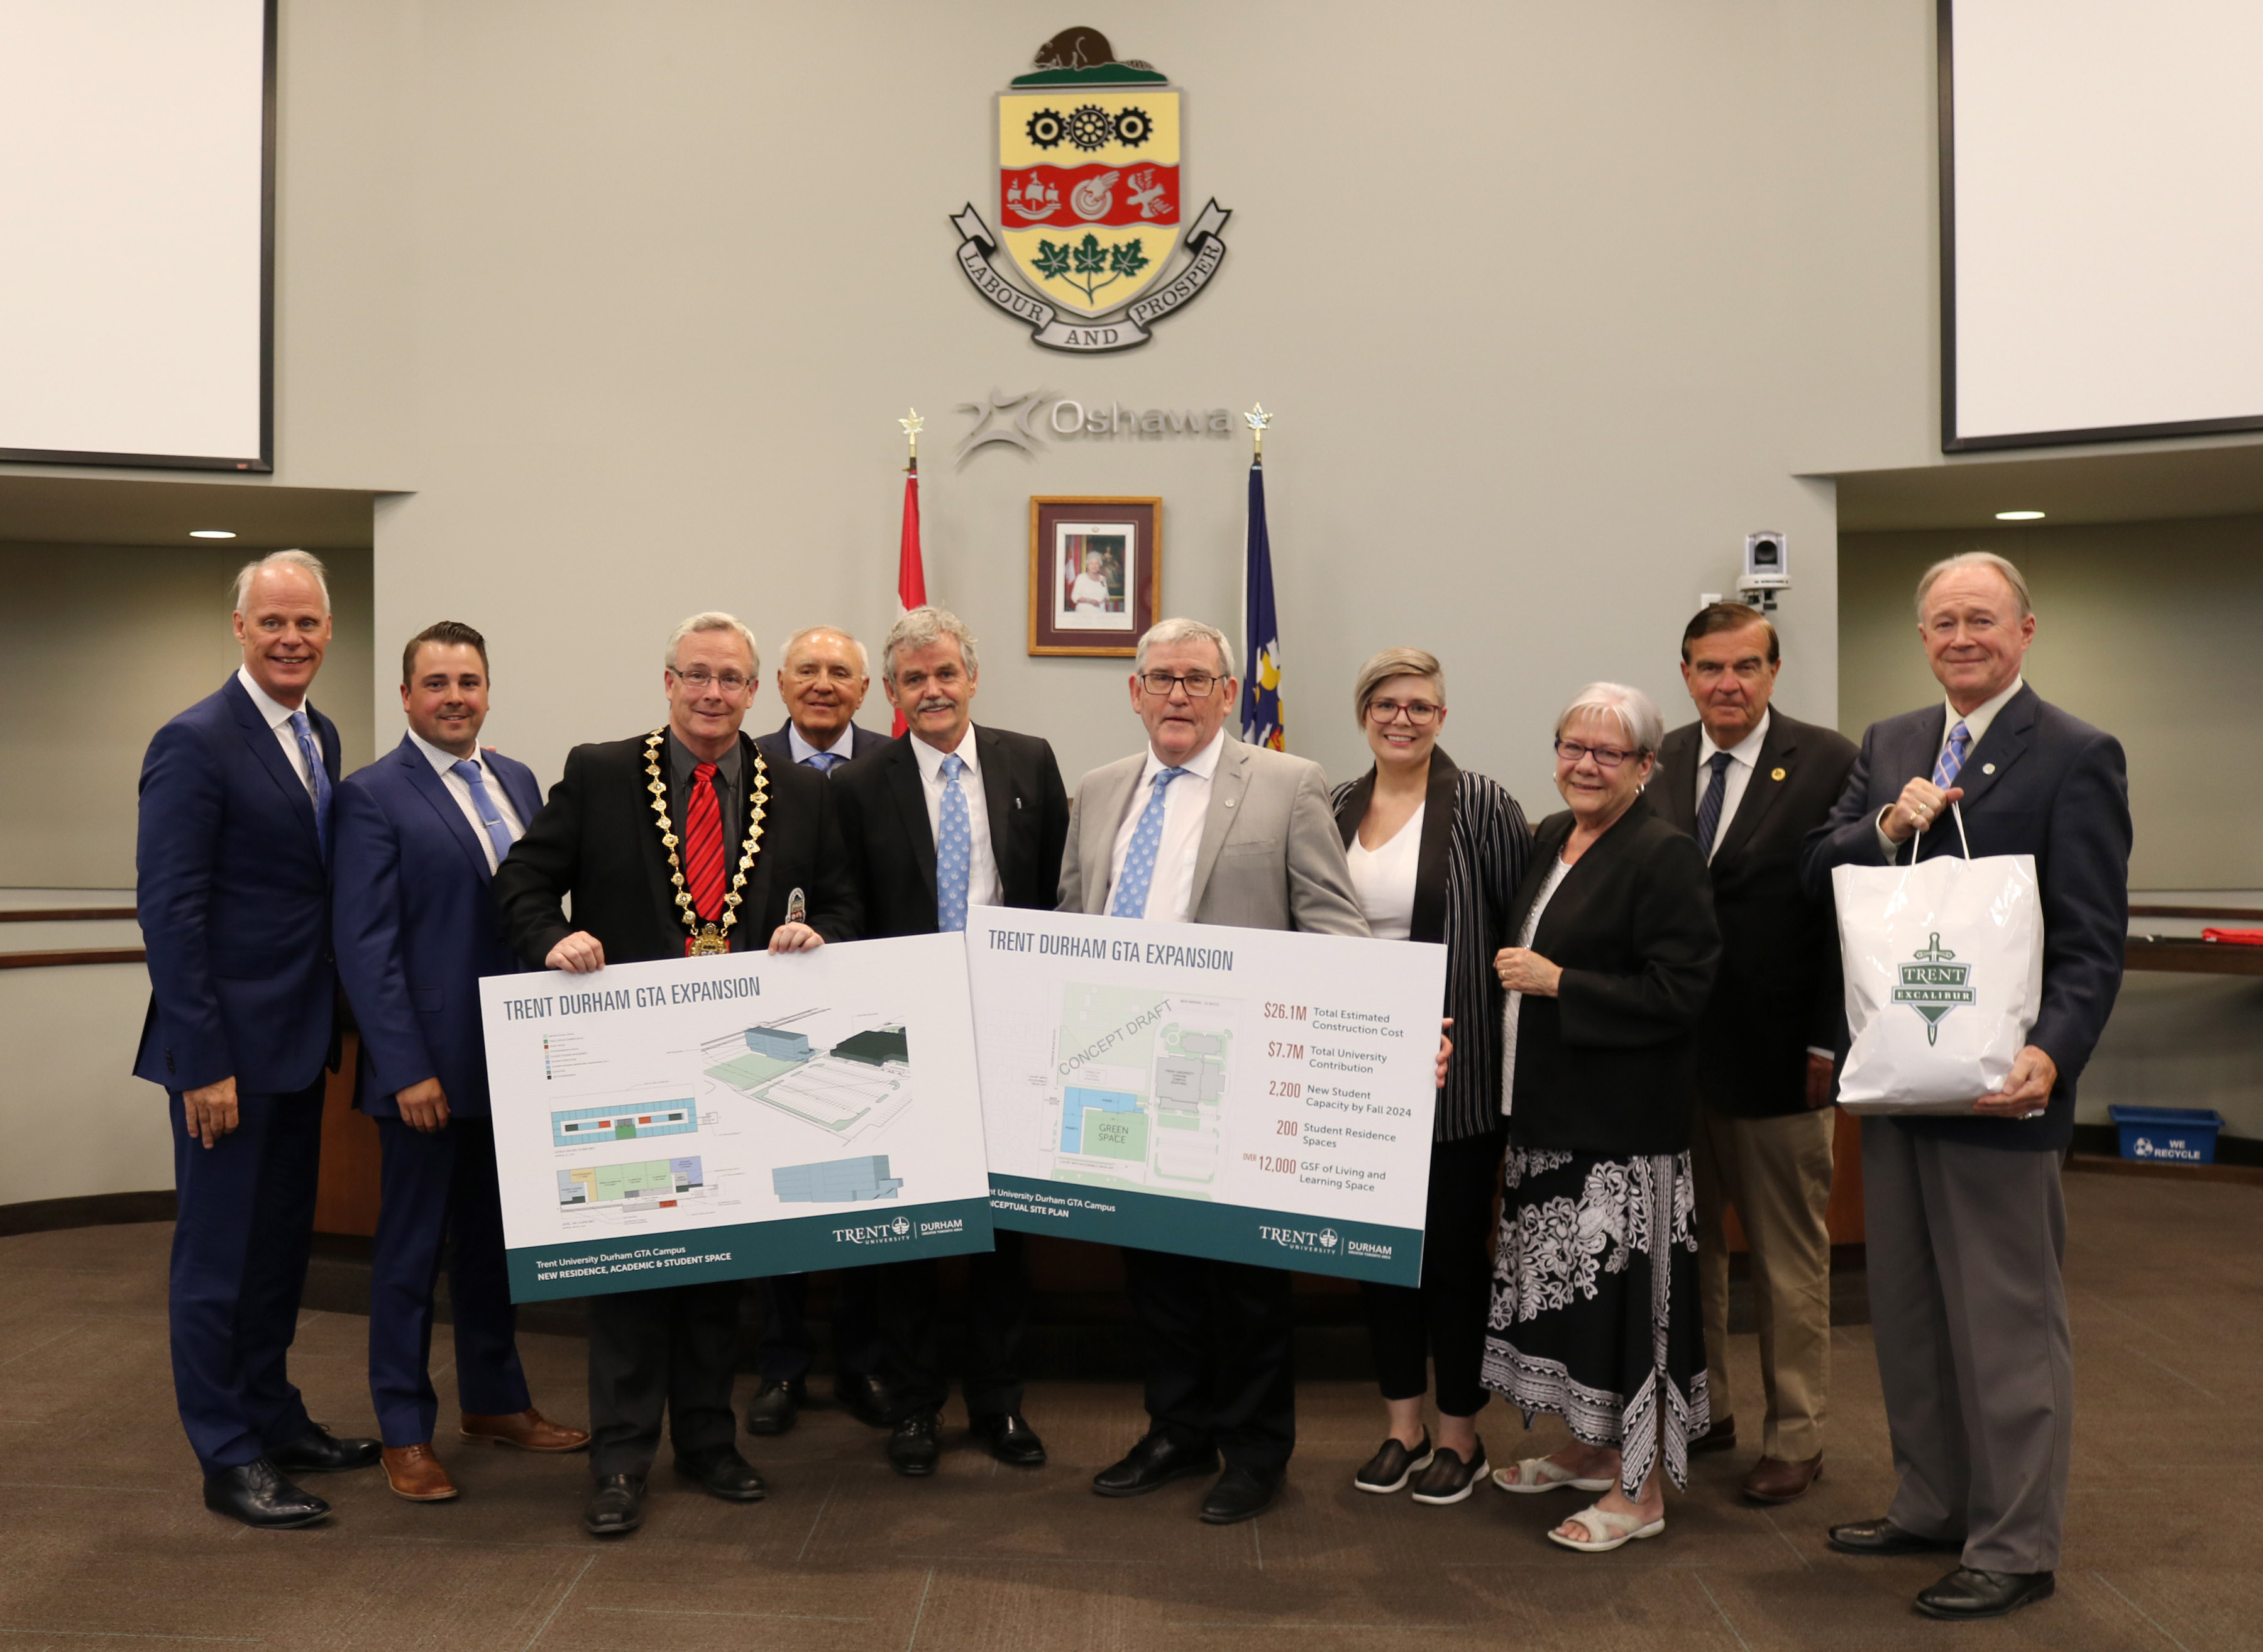 Trent University unveils expansion plans to Oshawa City Council at the June 11 Council meeting